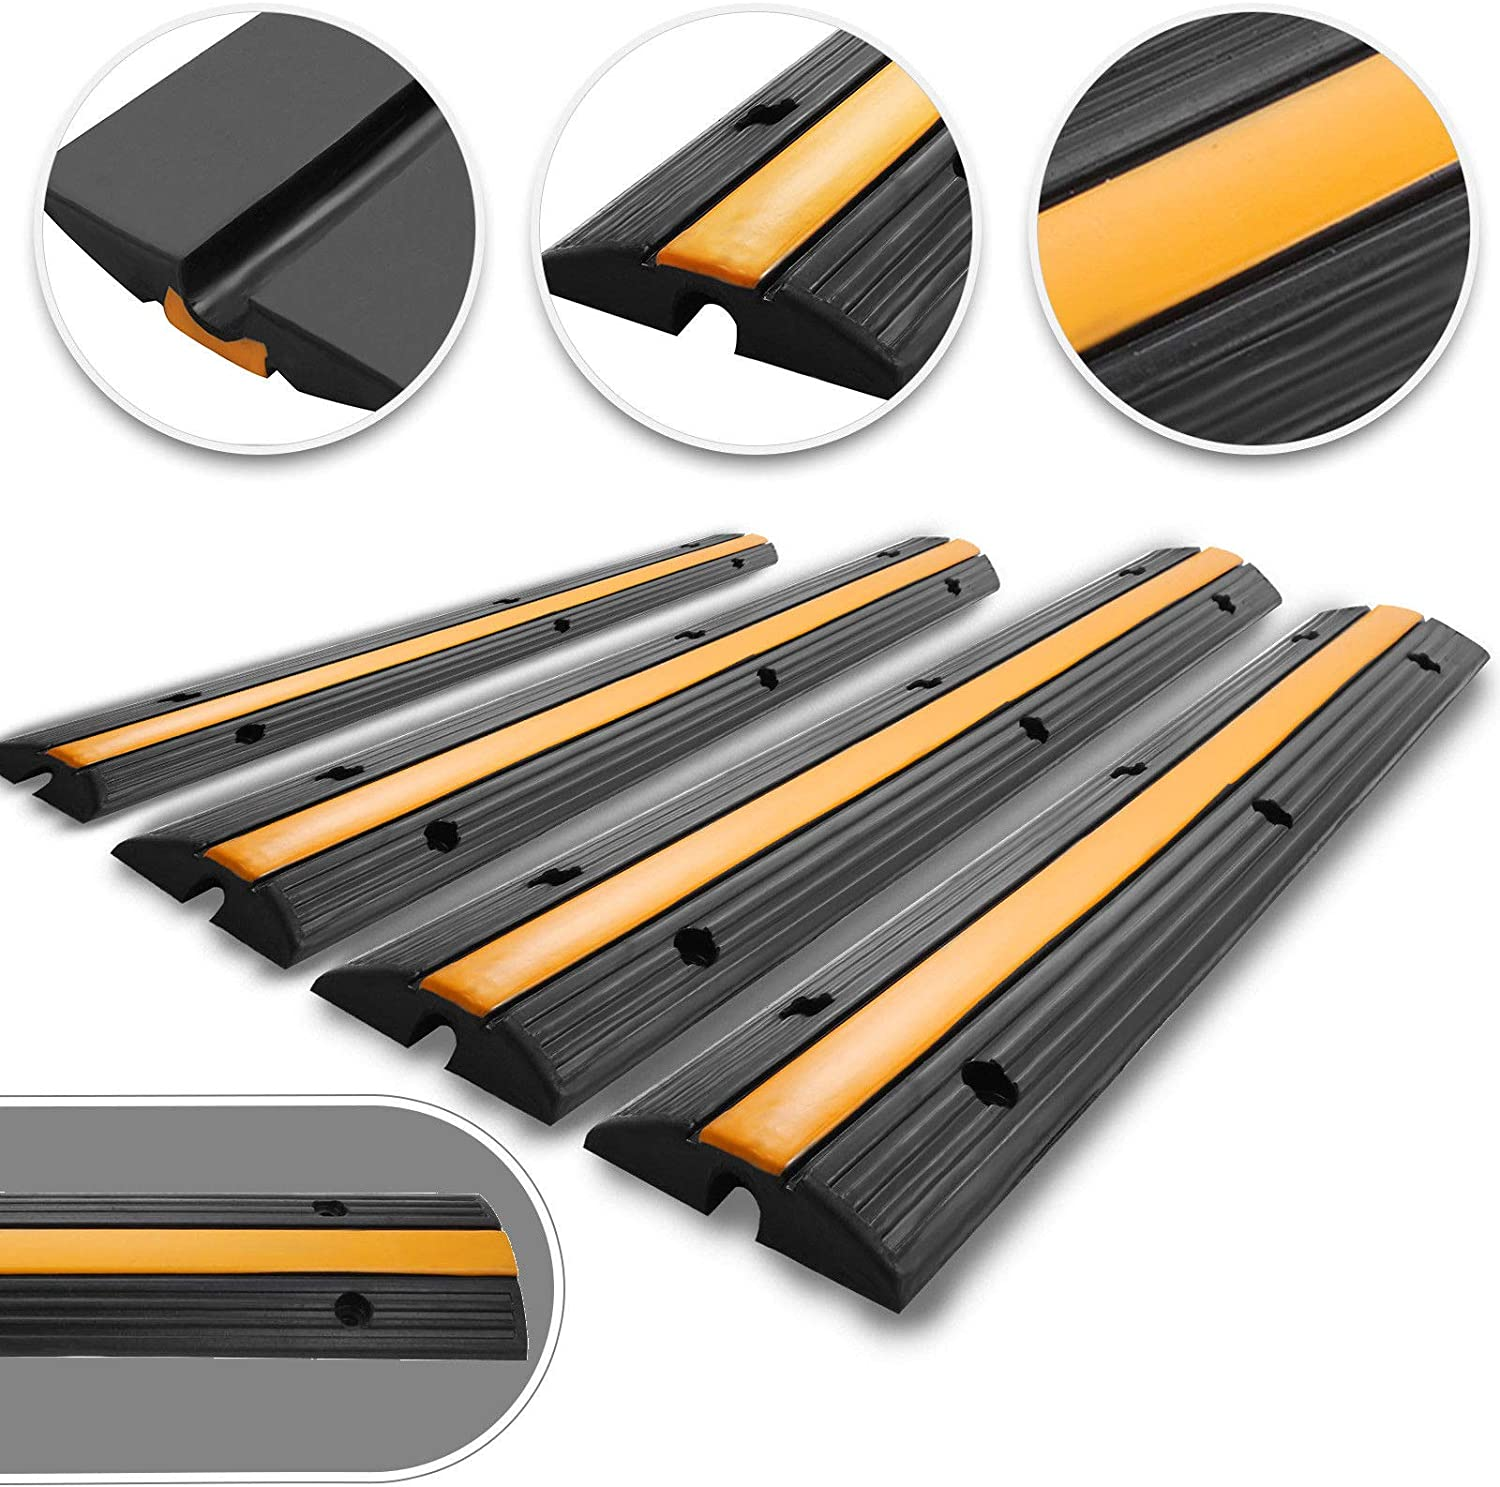 Happybuy 4 Pack of 1-Channel Rubber Cable Protector Ramps Heavy Duty 18000Lbs Load Capacity Cable Wire Cord Cover Ramp Speed Bump Driveway Hose Cable Ramp Protective Cover